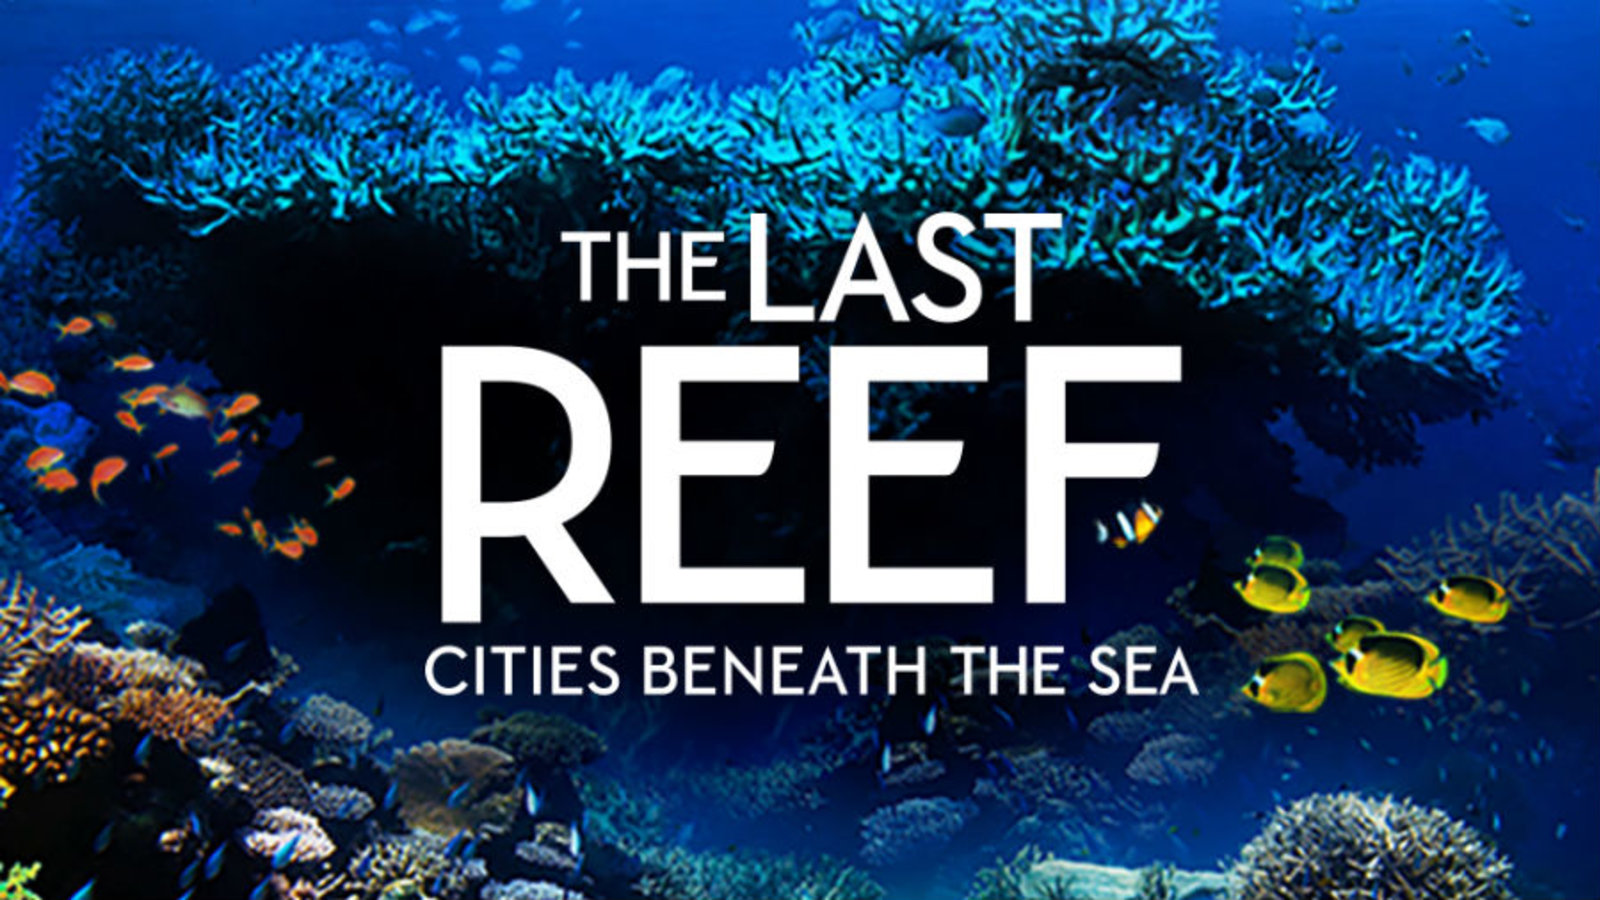 The Last Reef - A Lush Look at Ocean Reefs